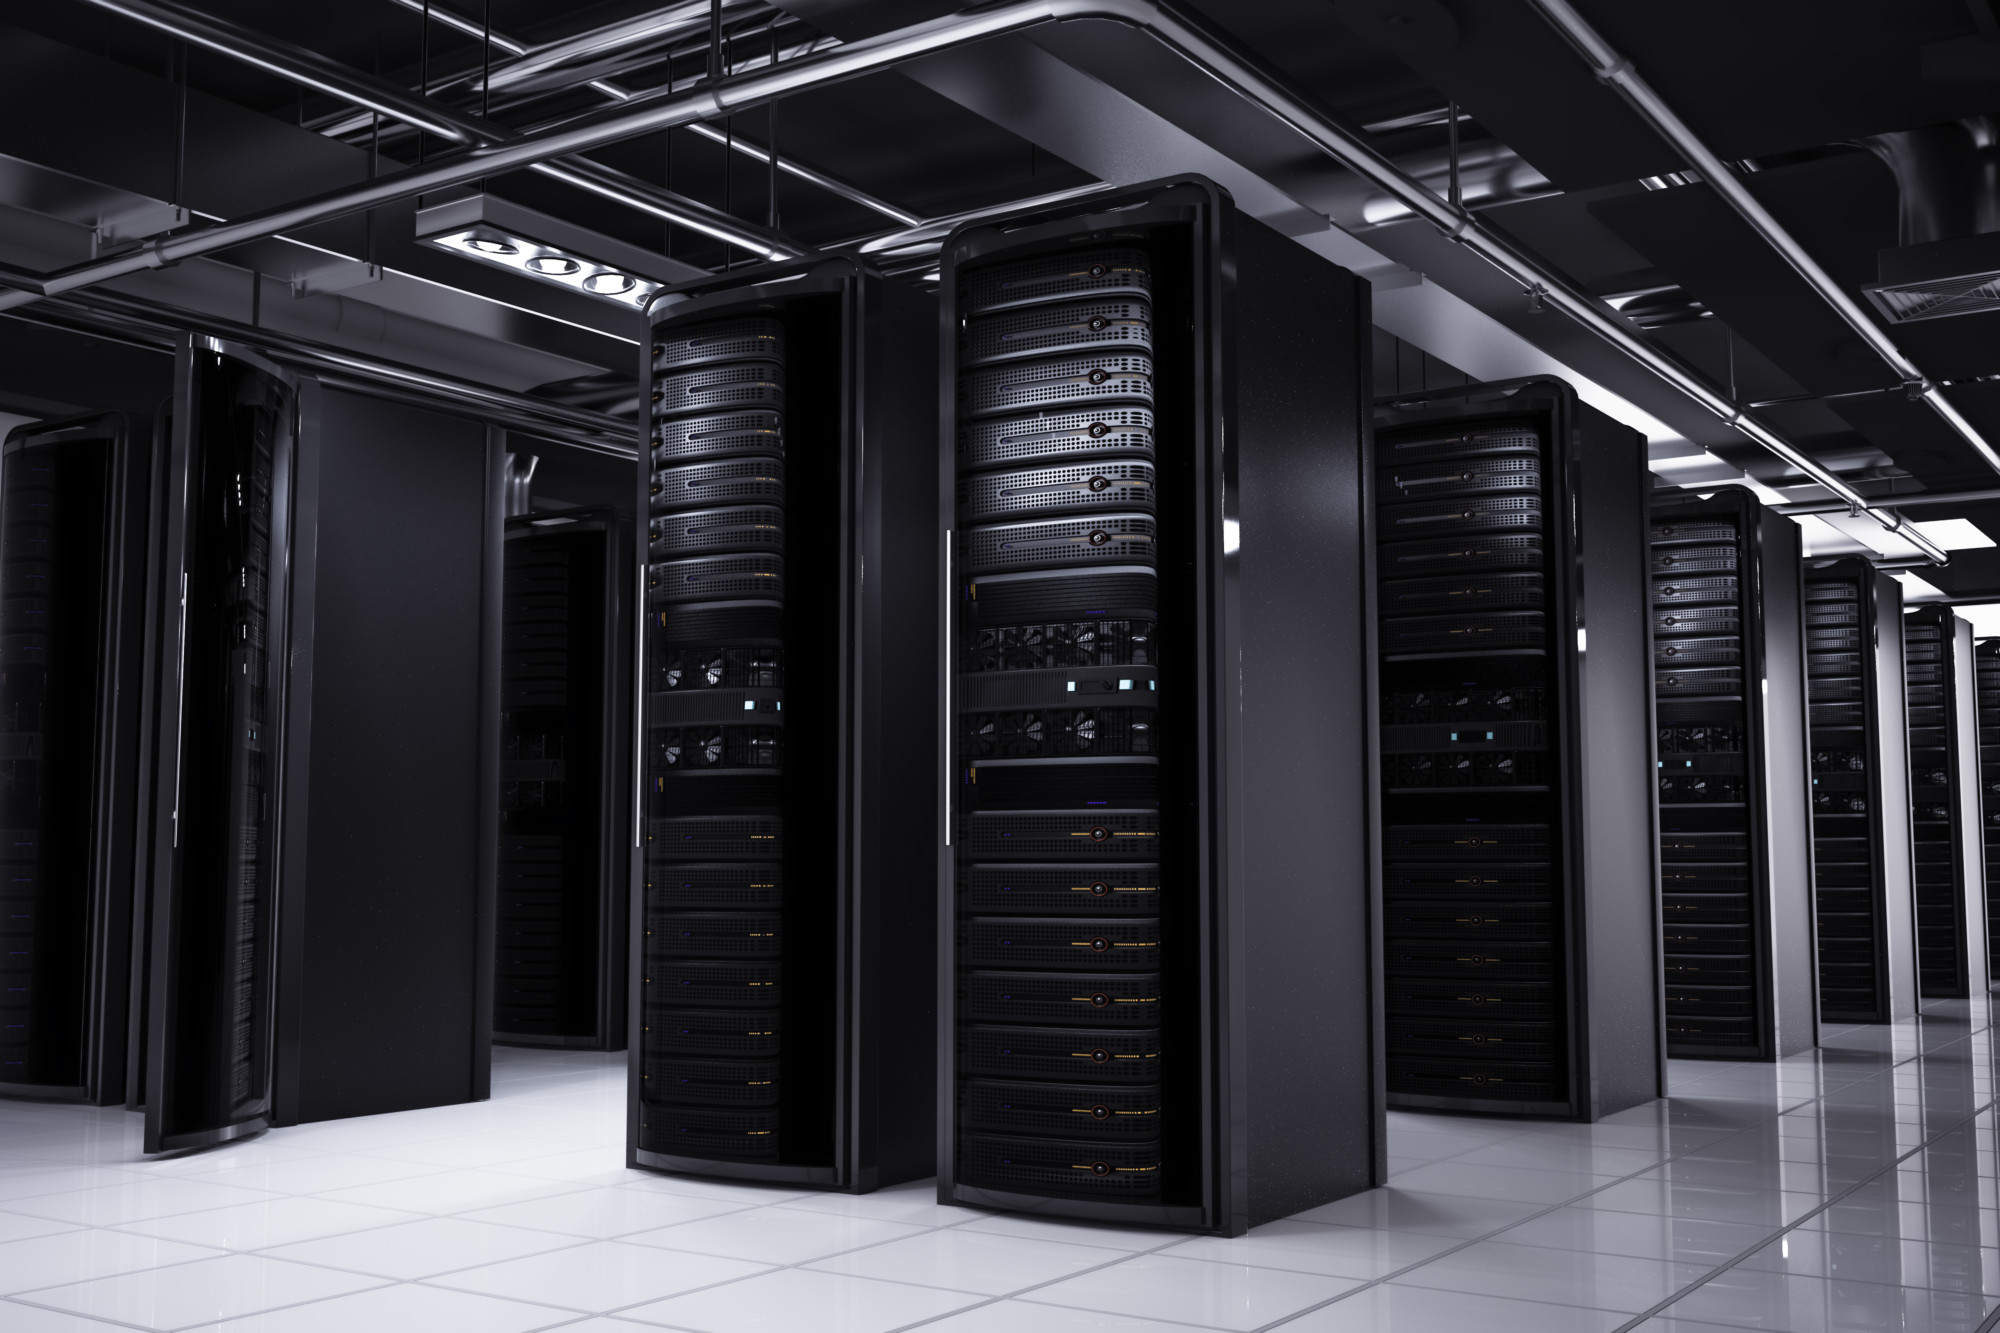 36MW High Capacity Data Centre Enabling Works - Data Centre Construction